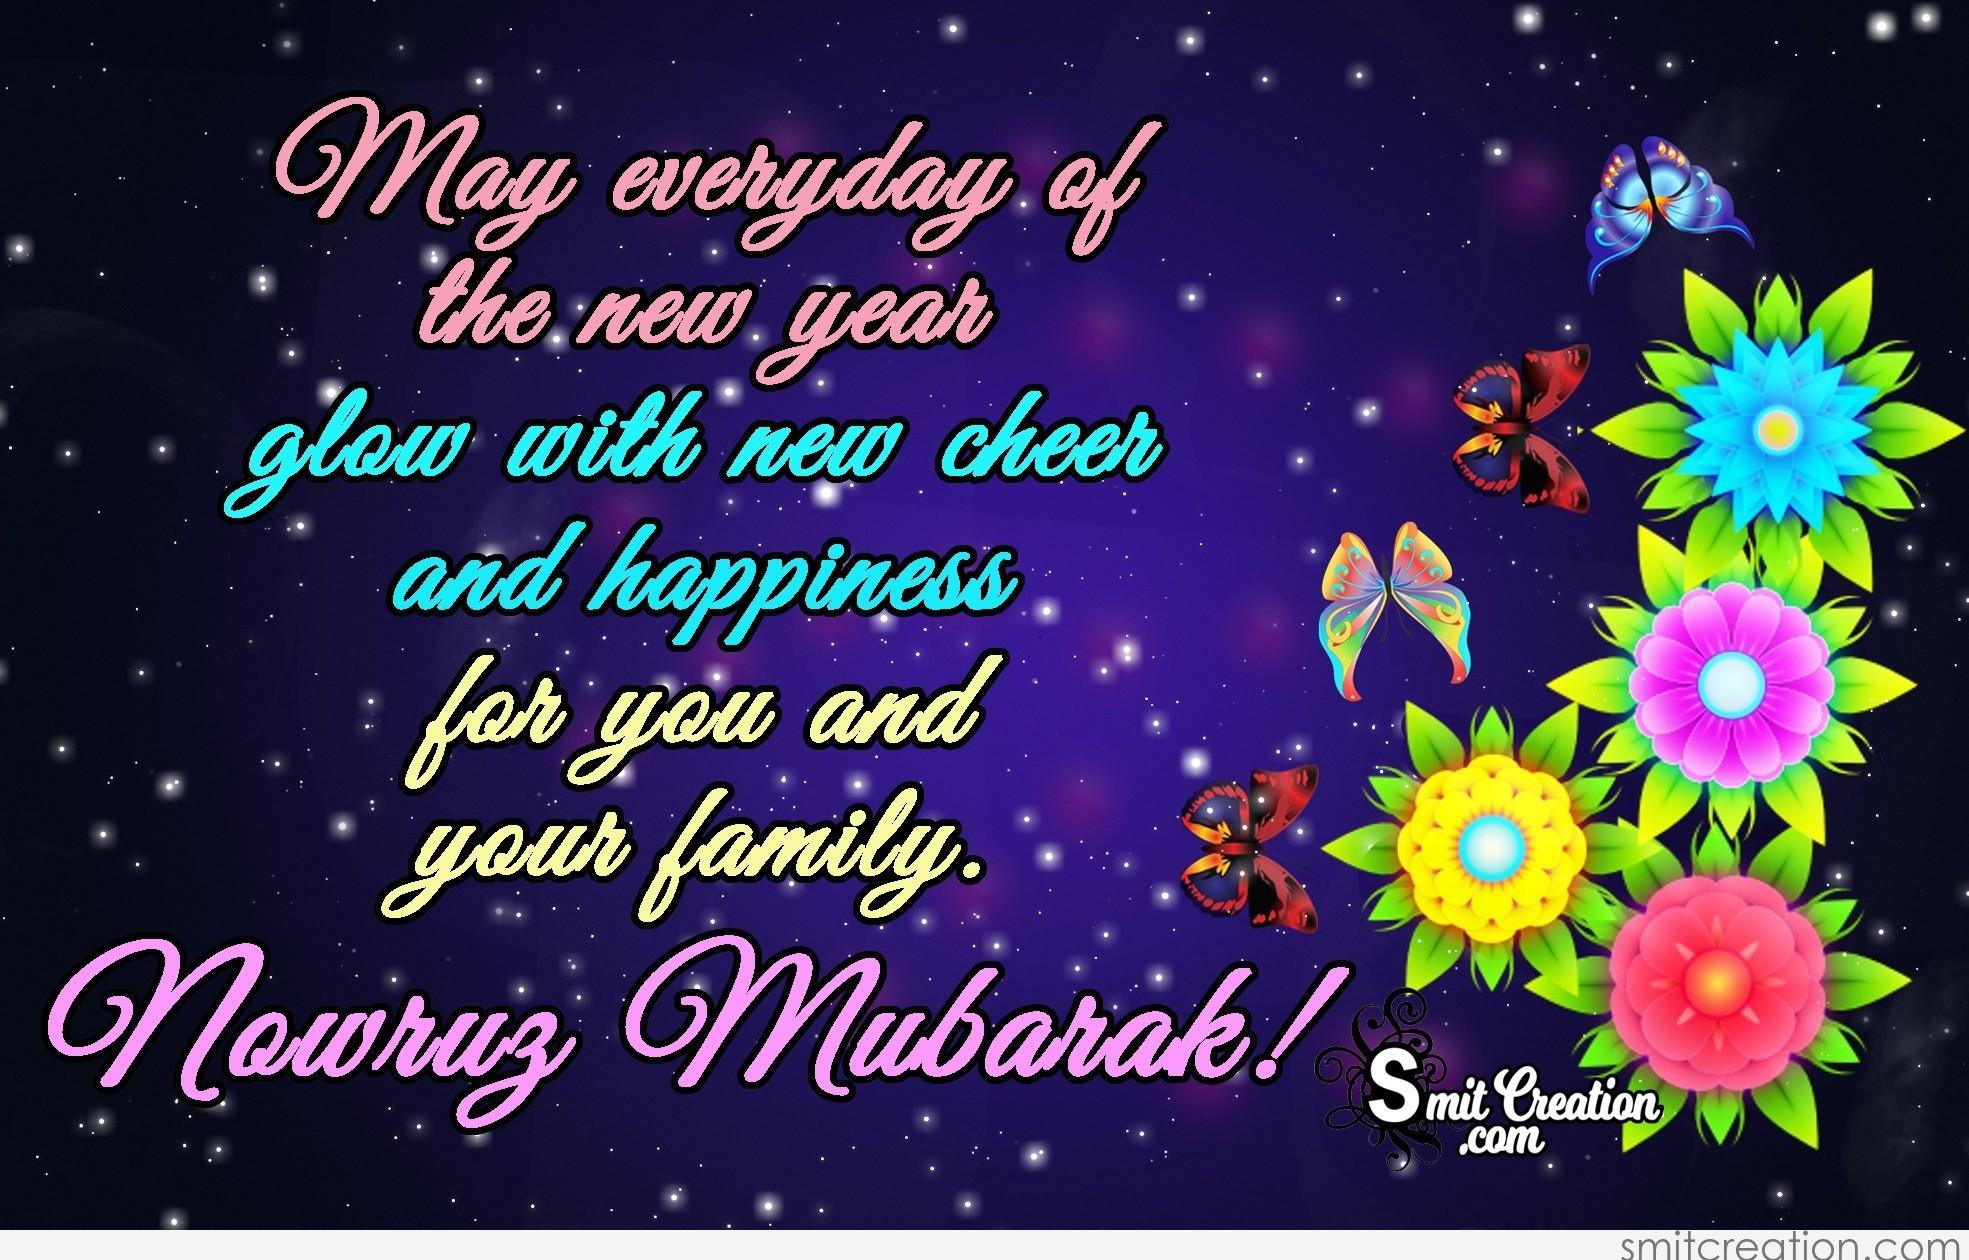 Nowruz greeting message image collections greetings card design simple iranian new year greetings happy nowruz message in farsi m4hsunfo